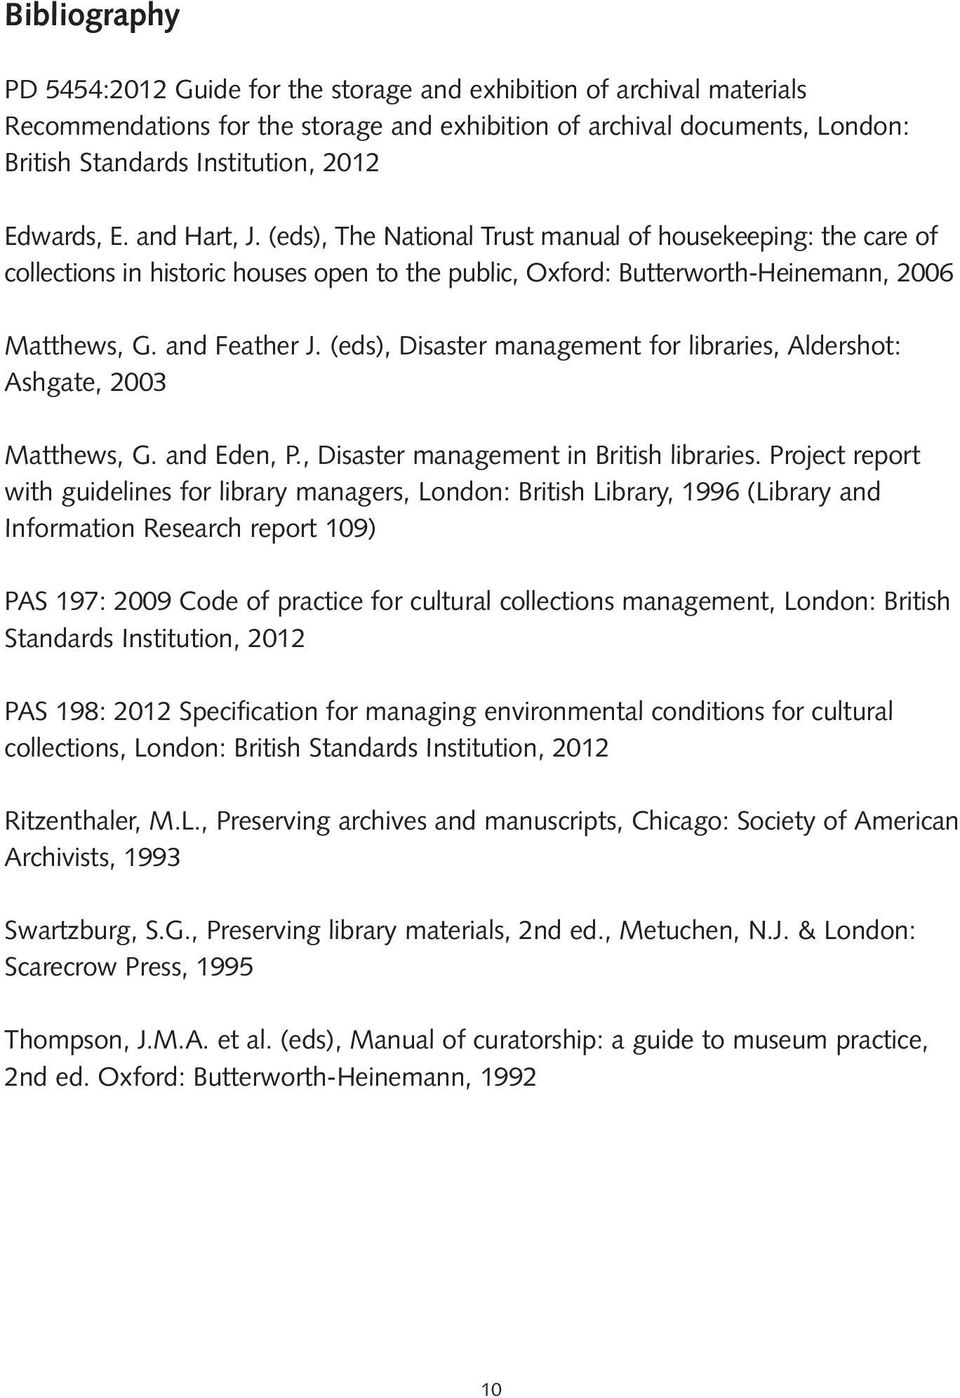 and Feather J. (eds), Disaster management for libraries, Aldershot: Ashgate, 2003 Matthews, G. and Eden, P., Disaster management in British libraries.